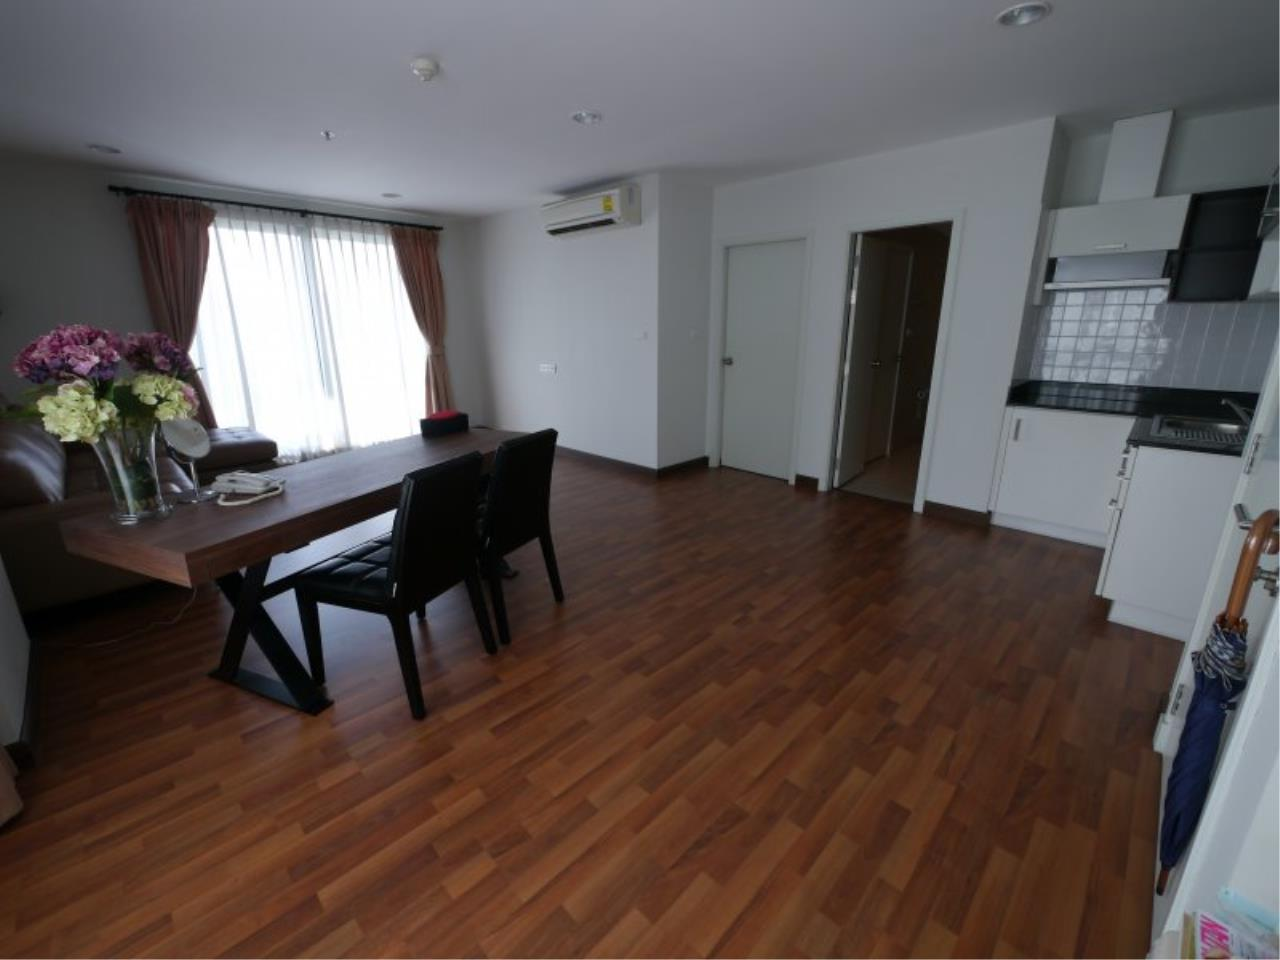 Piri Property Agency's Comfort 1 Bedroom in the Centric Scene Paholyothin 7 Condo for rent on high floor 2